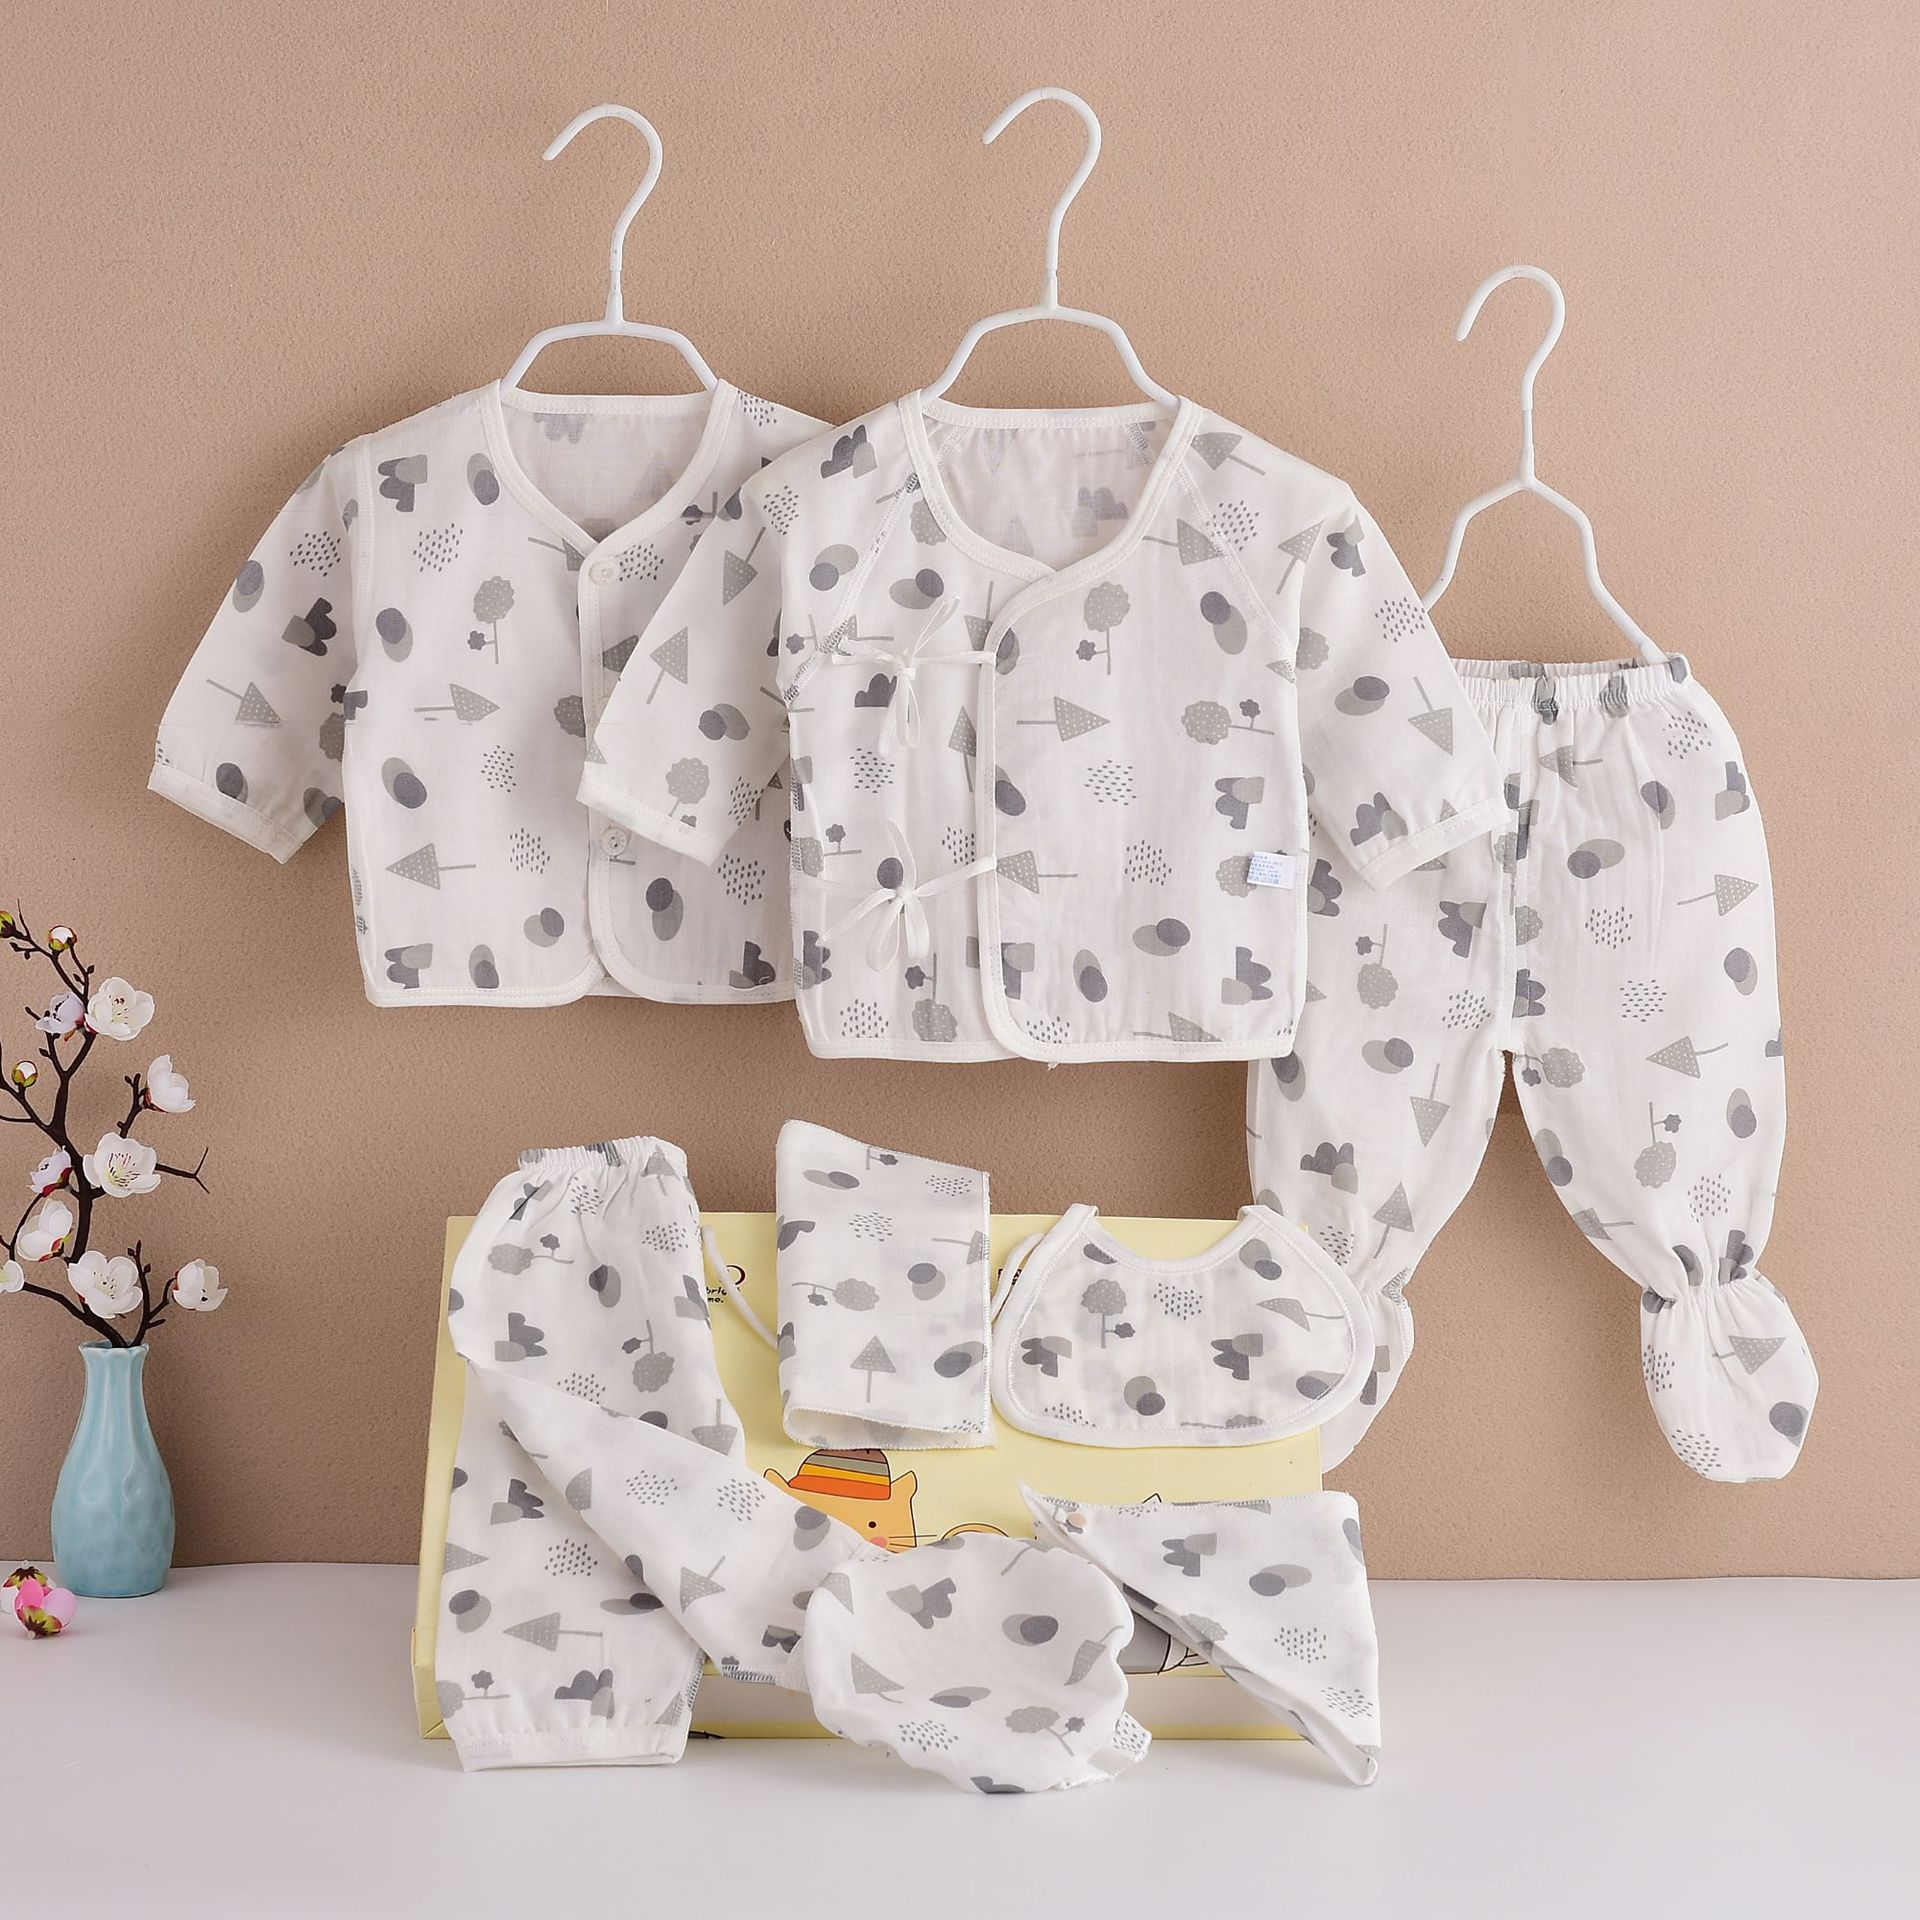 2019 Mom And Baby New Products Newborns Pure Cotton Gauze Eight Set Infants Men And Women Baby Gift Set